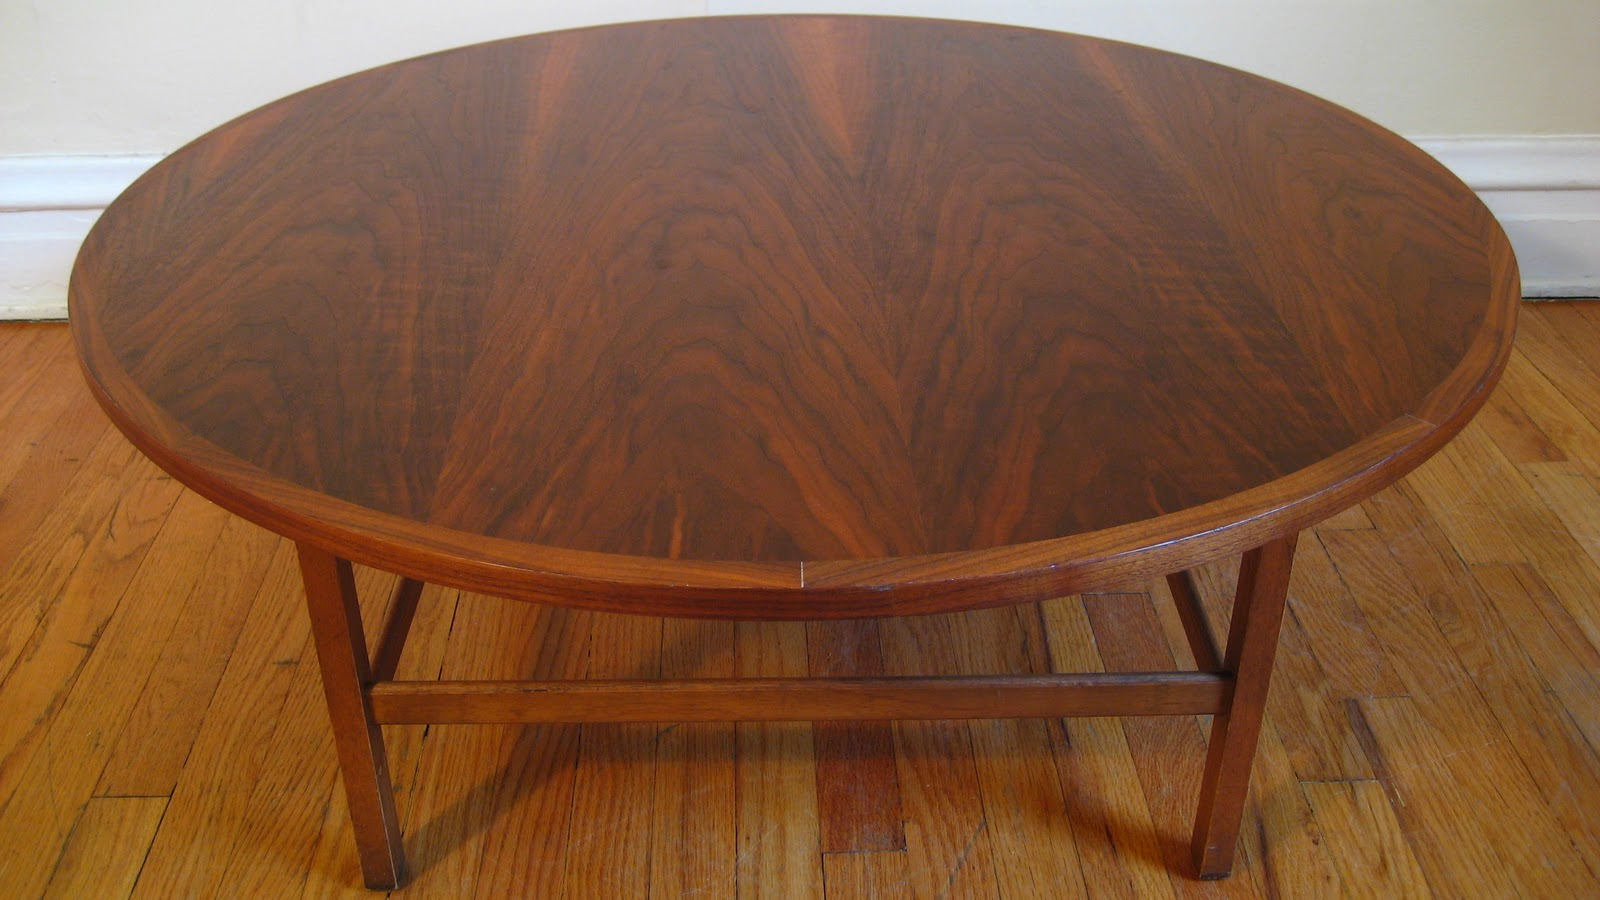 Ideal Vintage Lane uDelineator u cocktail table designed by Paul McCobb Delineator was Lane us top of the line offering in Round walnut tabletop on